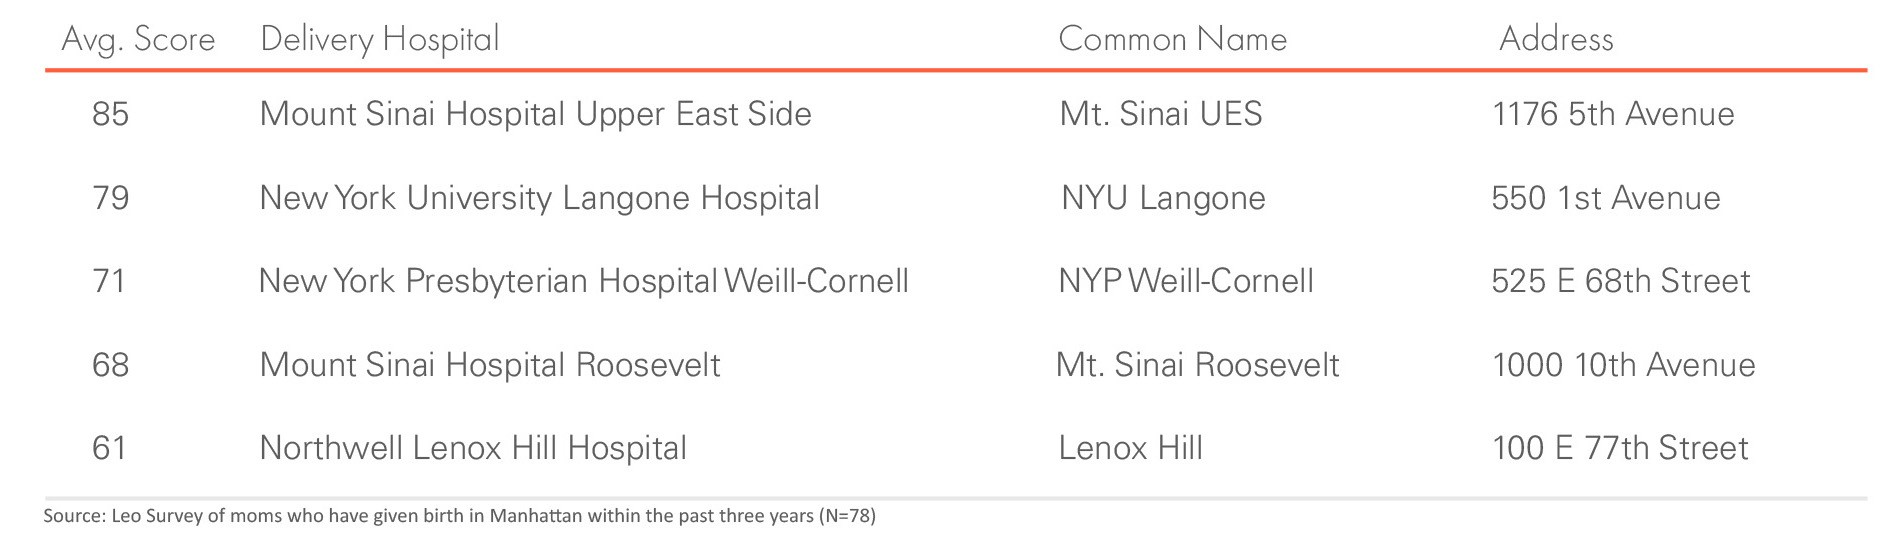 An Expecting Mom's Guide to Delivery Hospitals in Manhattan